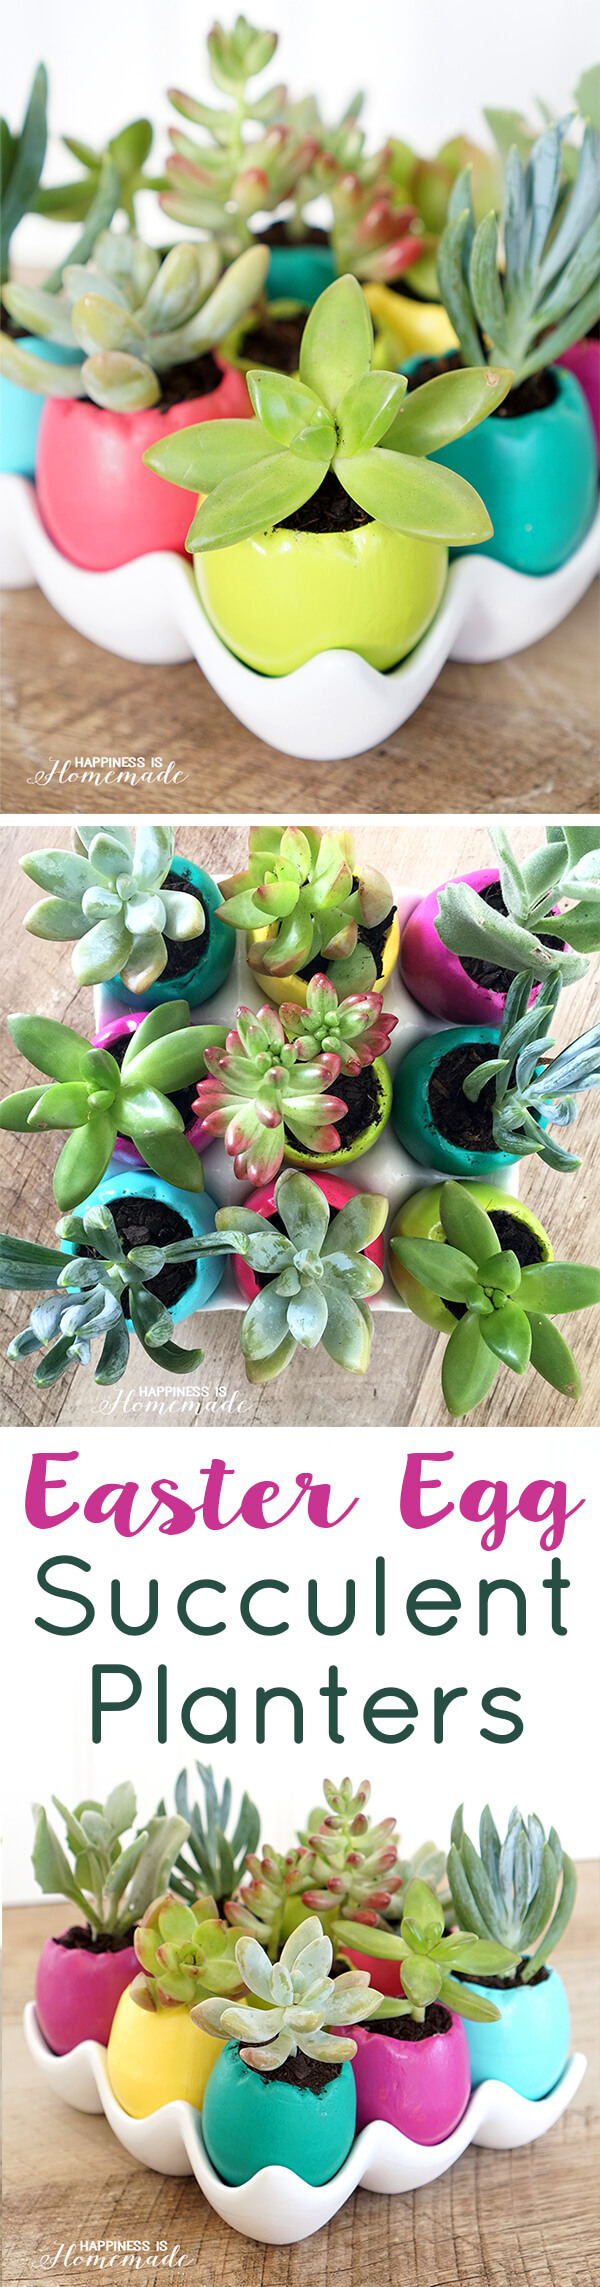 Colorful Ceramic Easter Egg Shell Succulent Planters for Spring